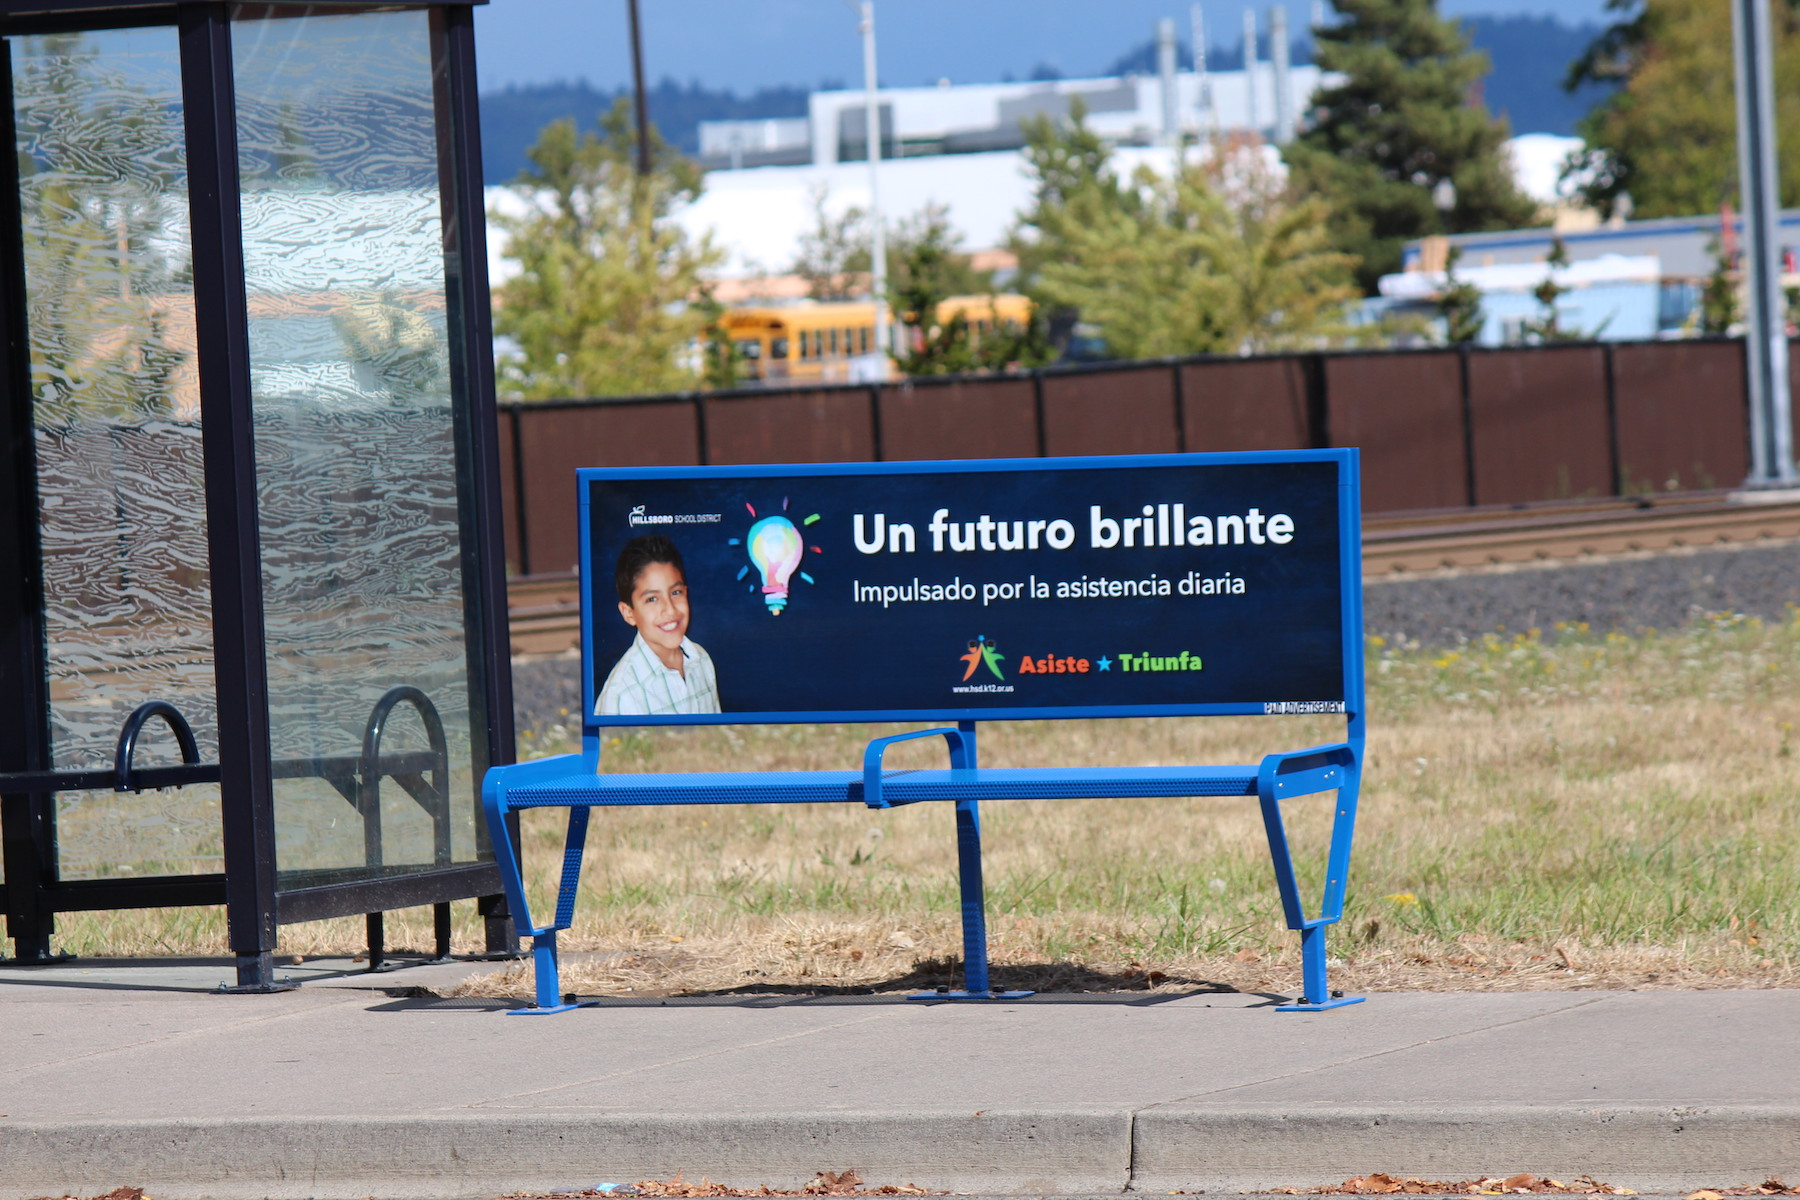 bus bench ad 3